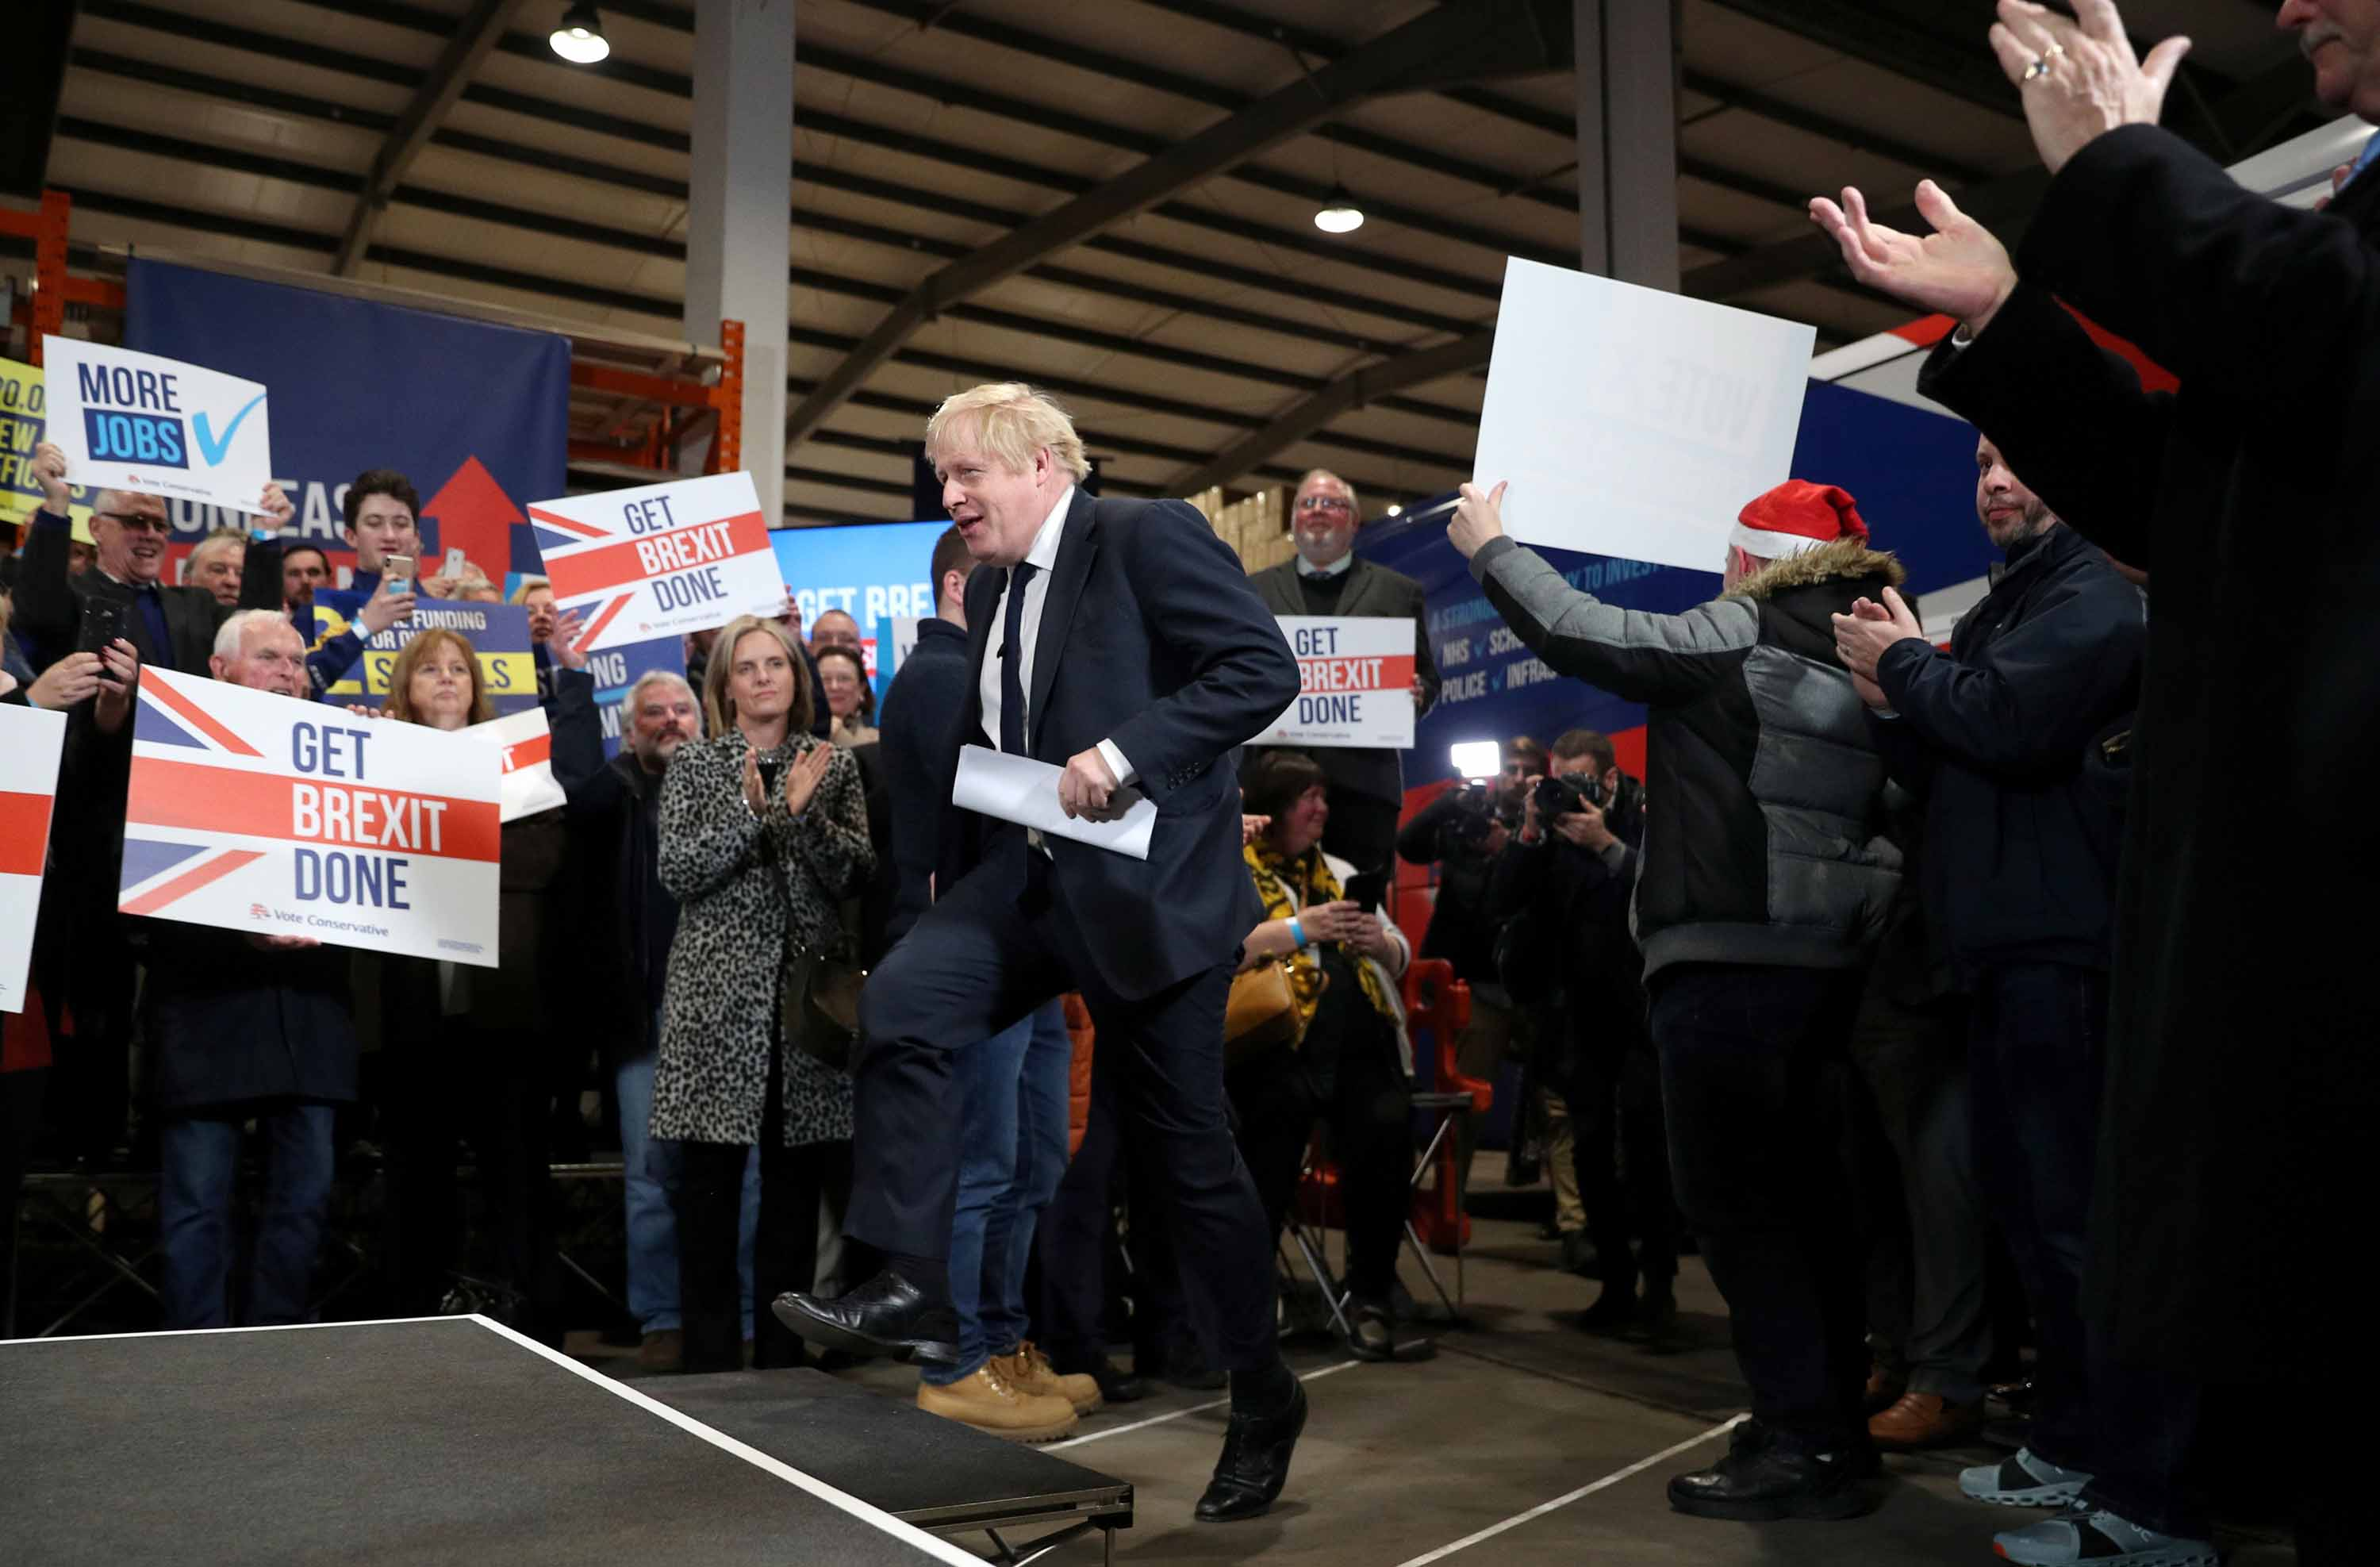 UK Prime Minister Boris Johnson attends a Conservative Party general election rally in Colchester, England on Monday. Photo: Hannah McKay/AFP via Getty Images